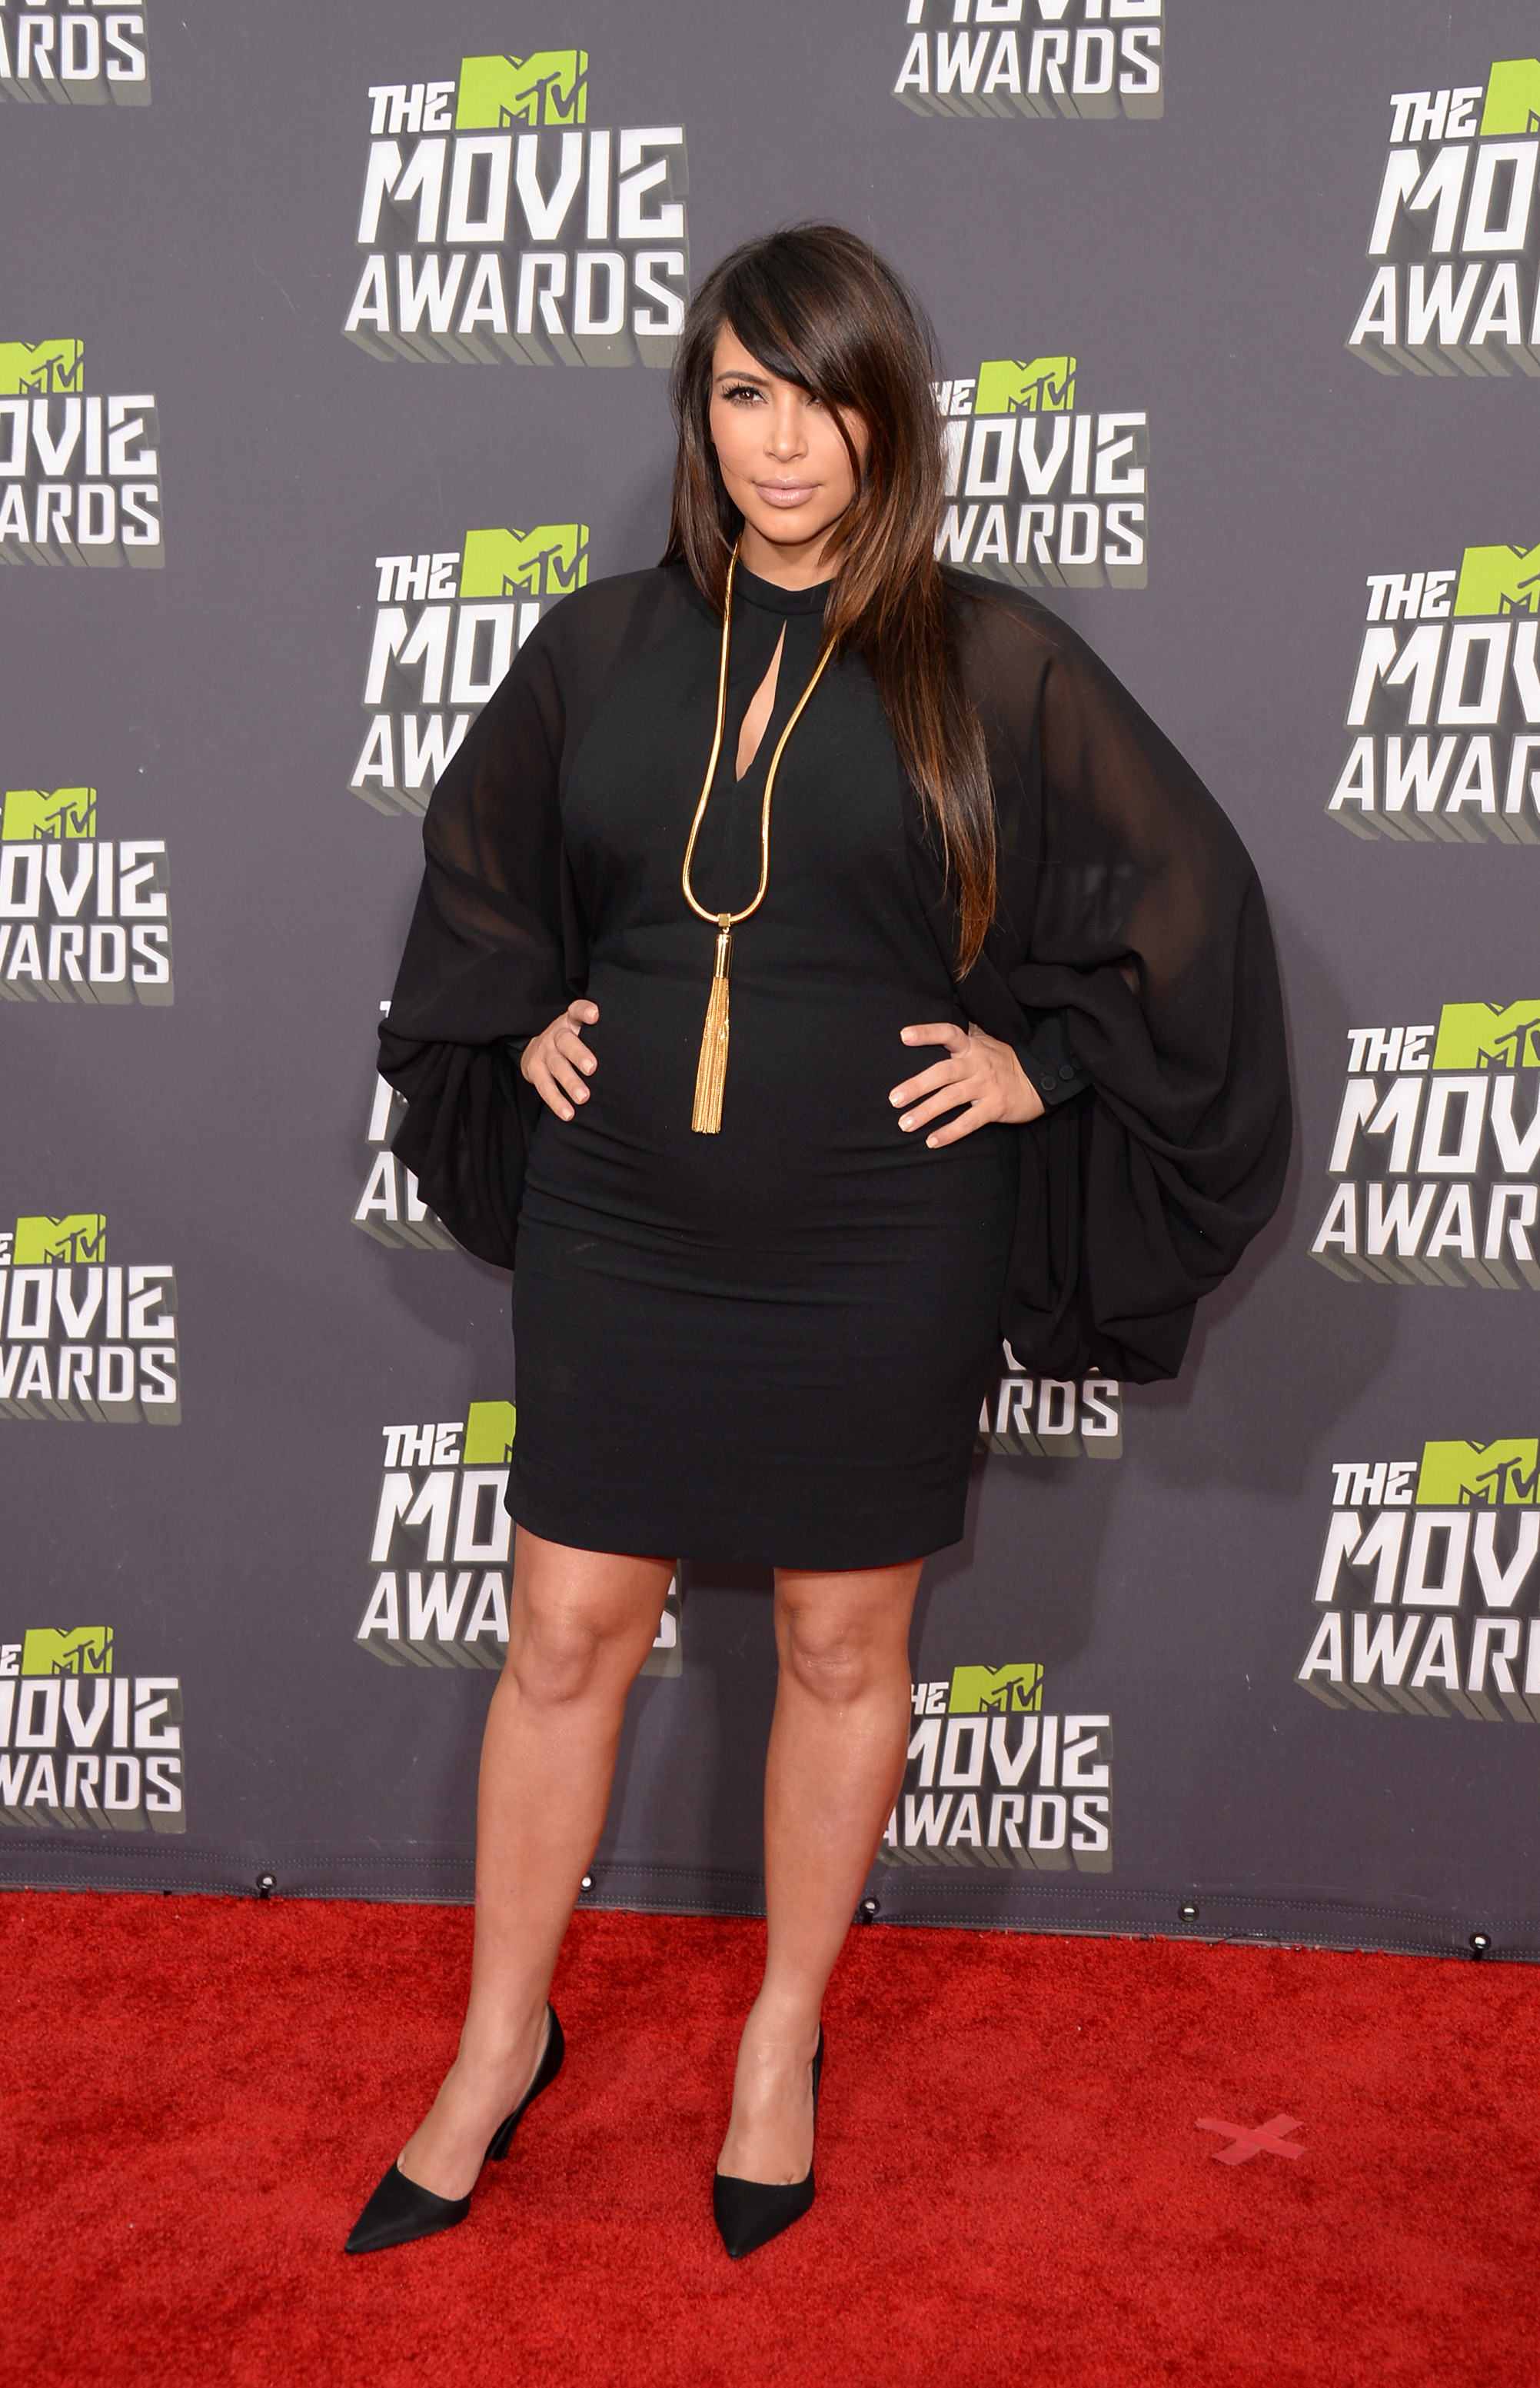 kim kardashian, mtv movie awards 2013, 2013 movie awards, kim kardashian mtv